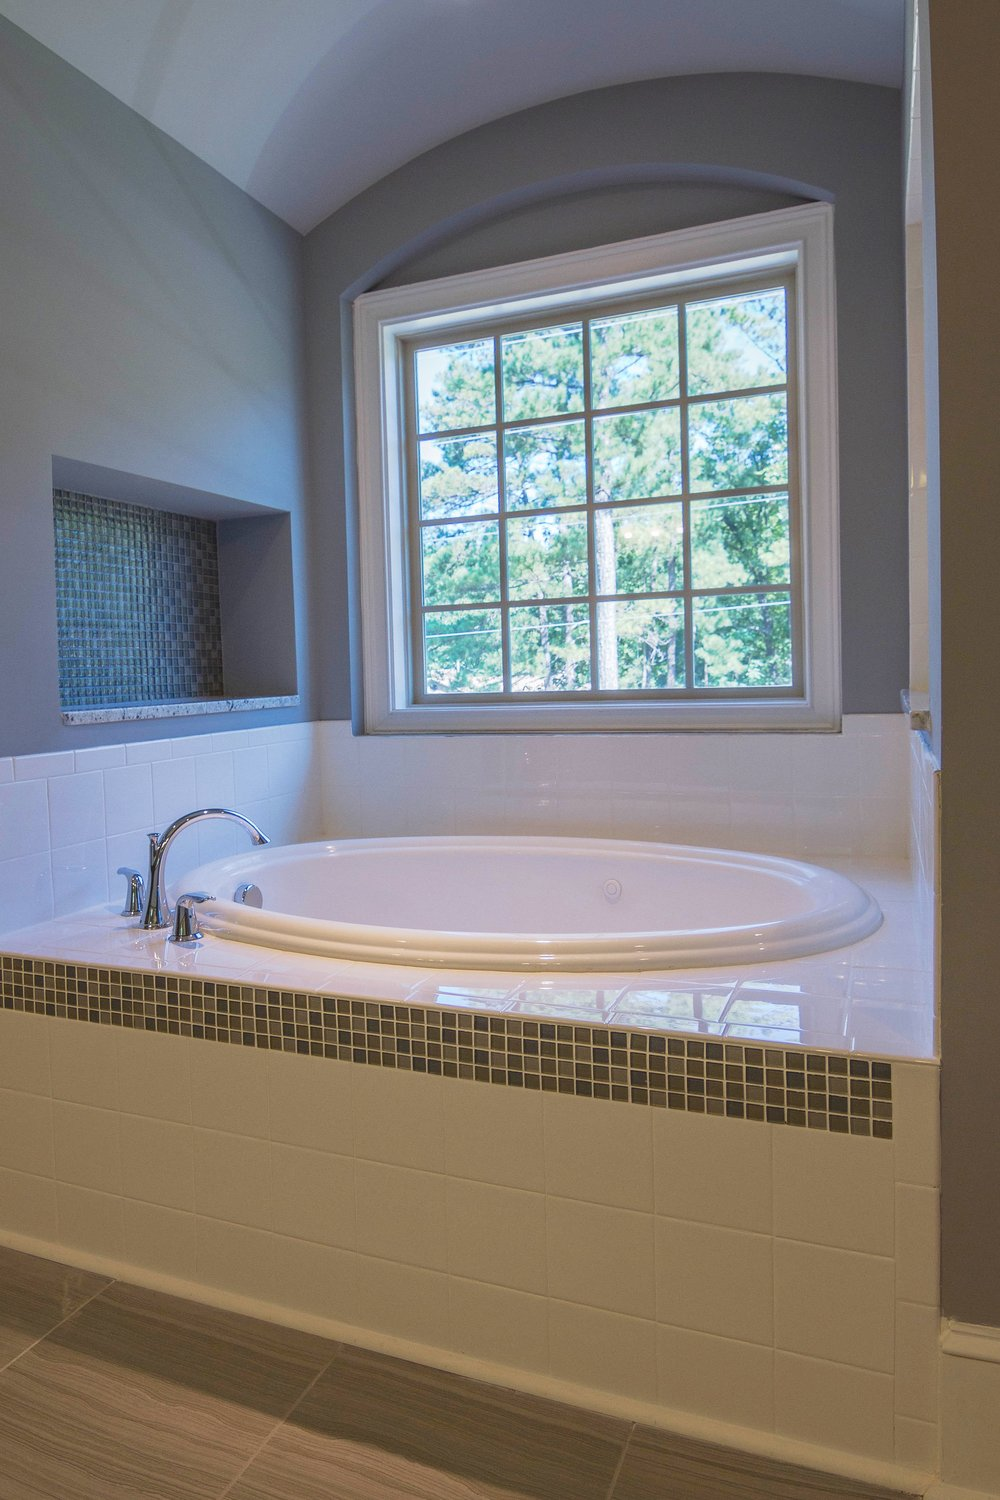 ~27 - Master Bath Tub 237_batch.jpg